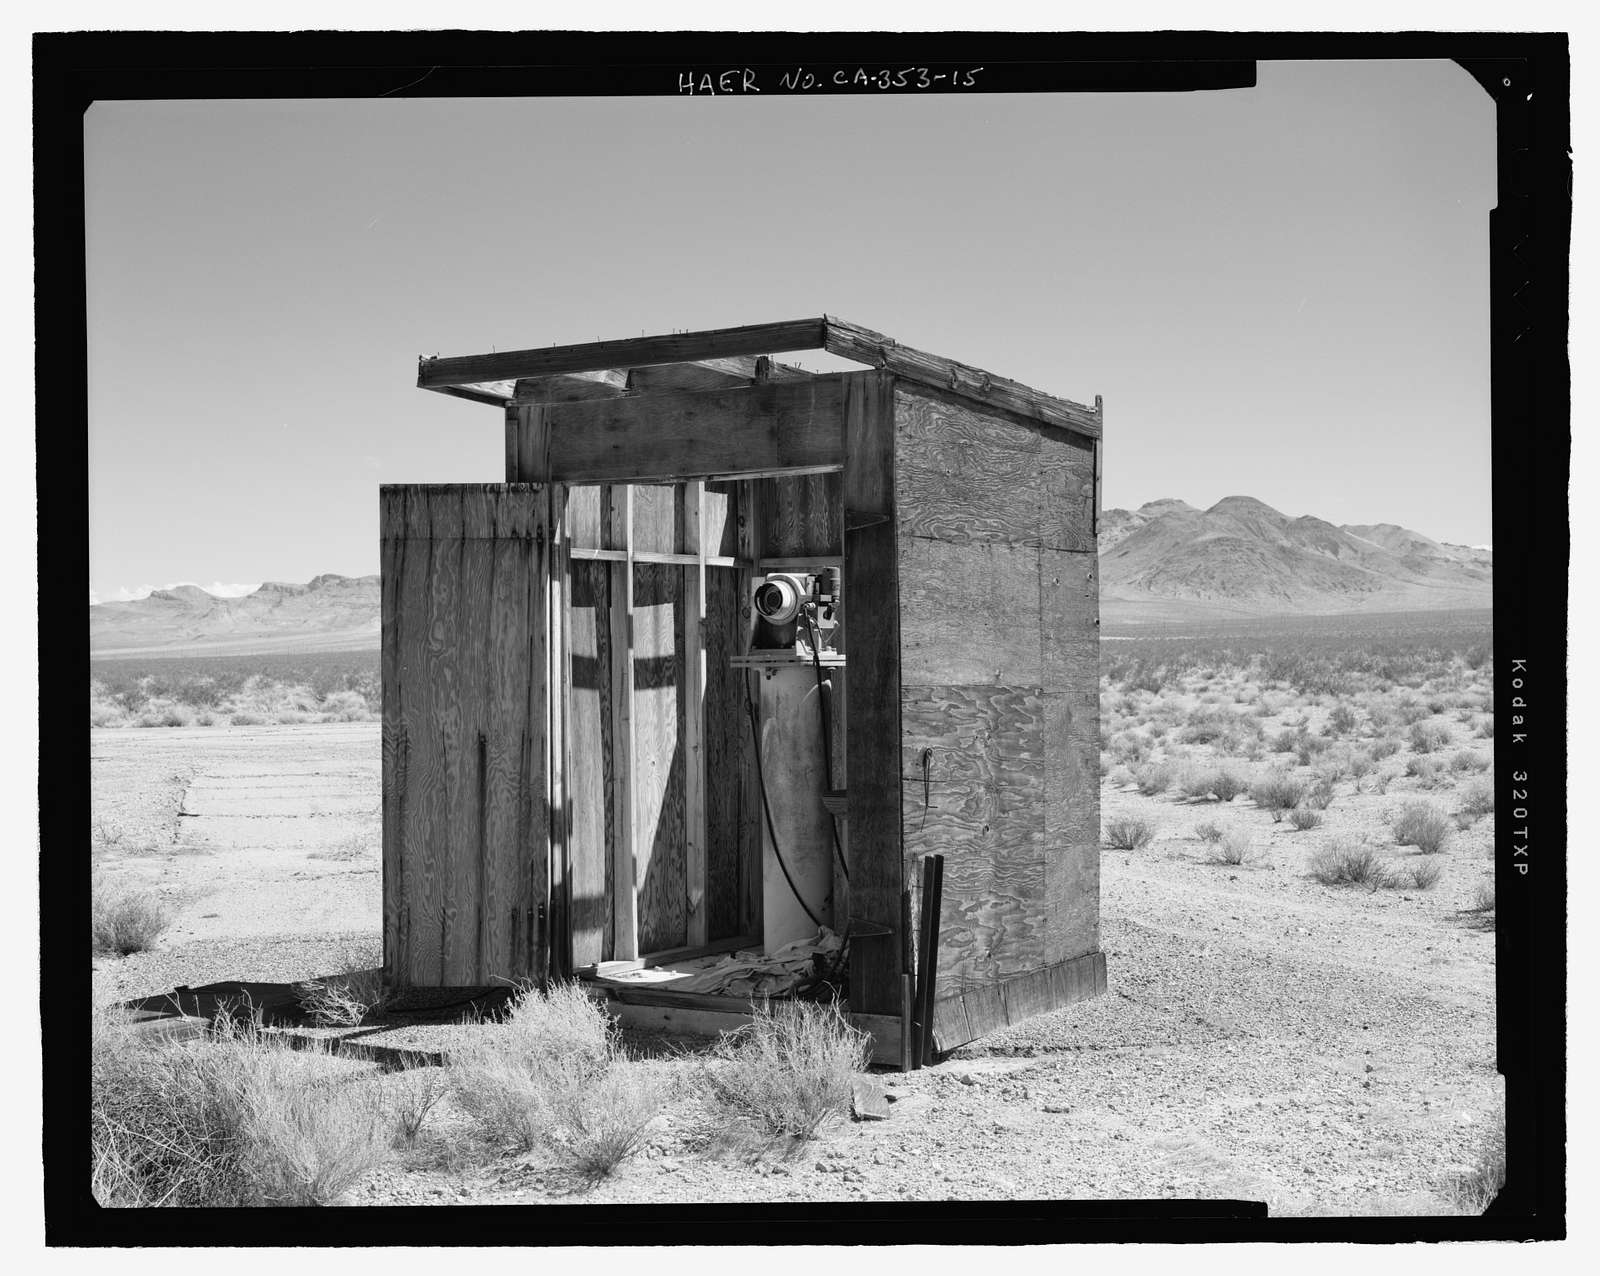 Naval Ordnance Test Station Inyokern, Randsburg Wash Facility Target Test Towers, Tower Road, China Lake, Kern County, CA